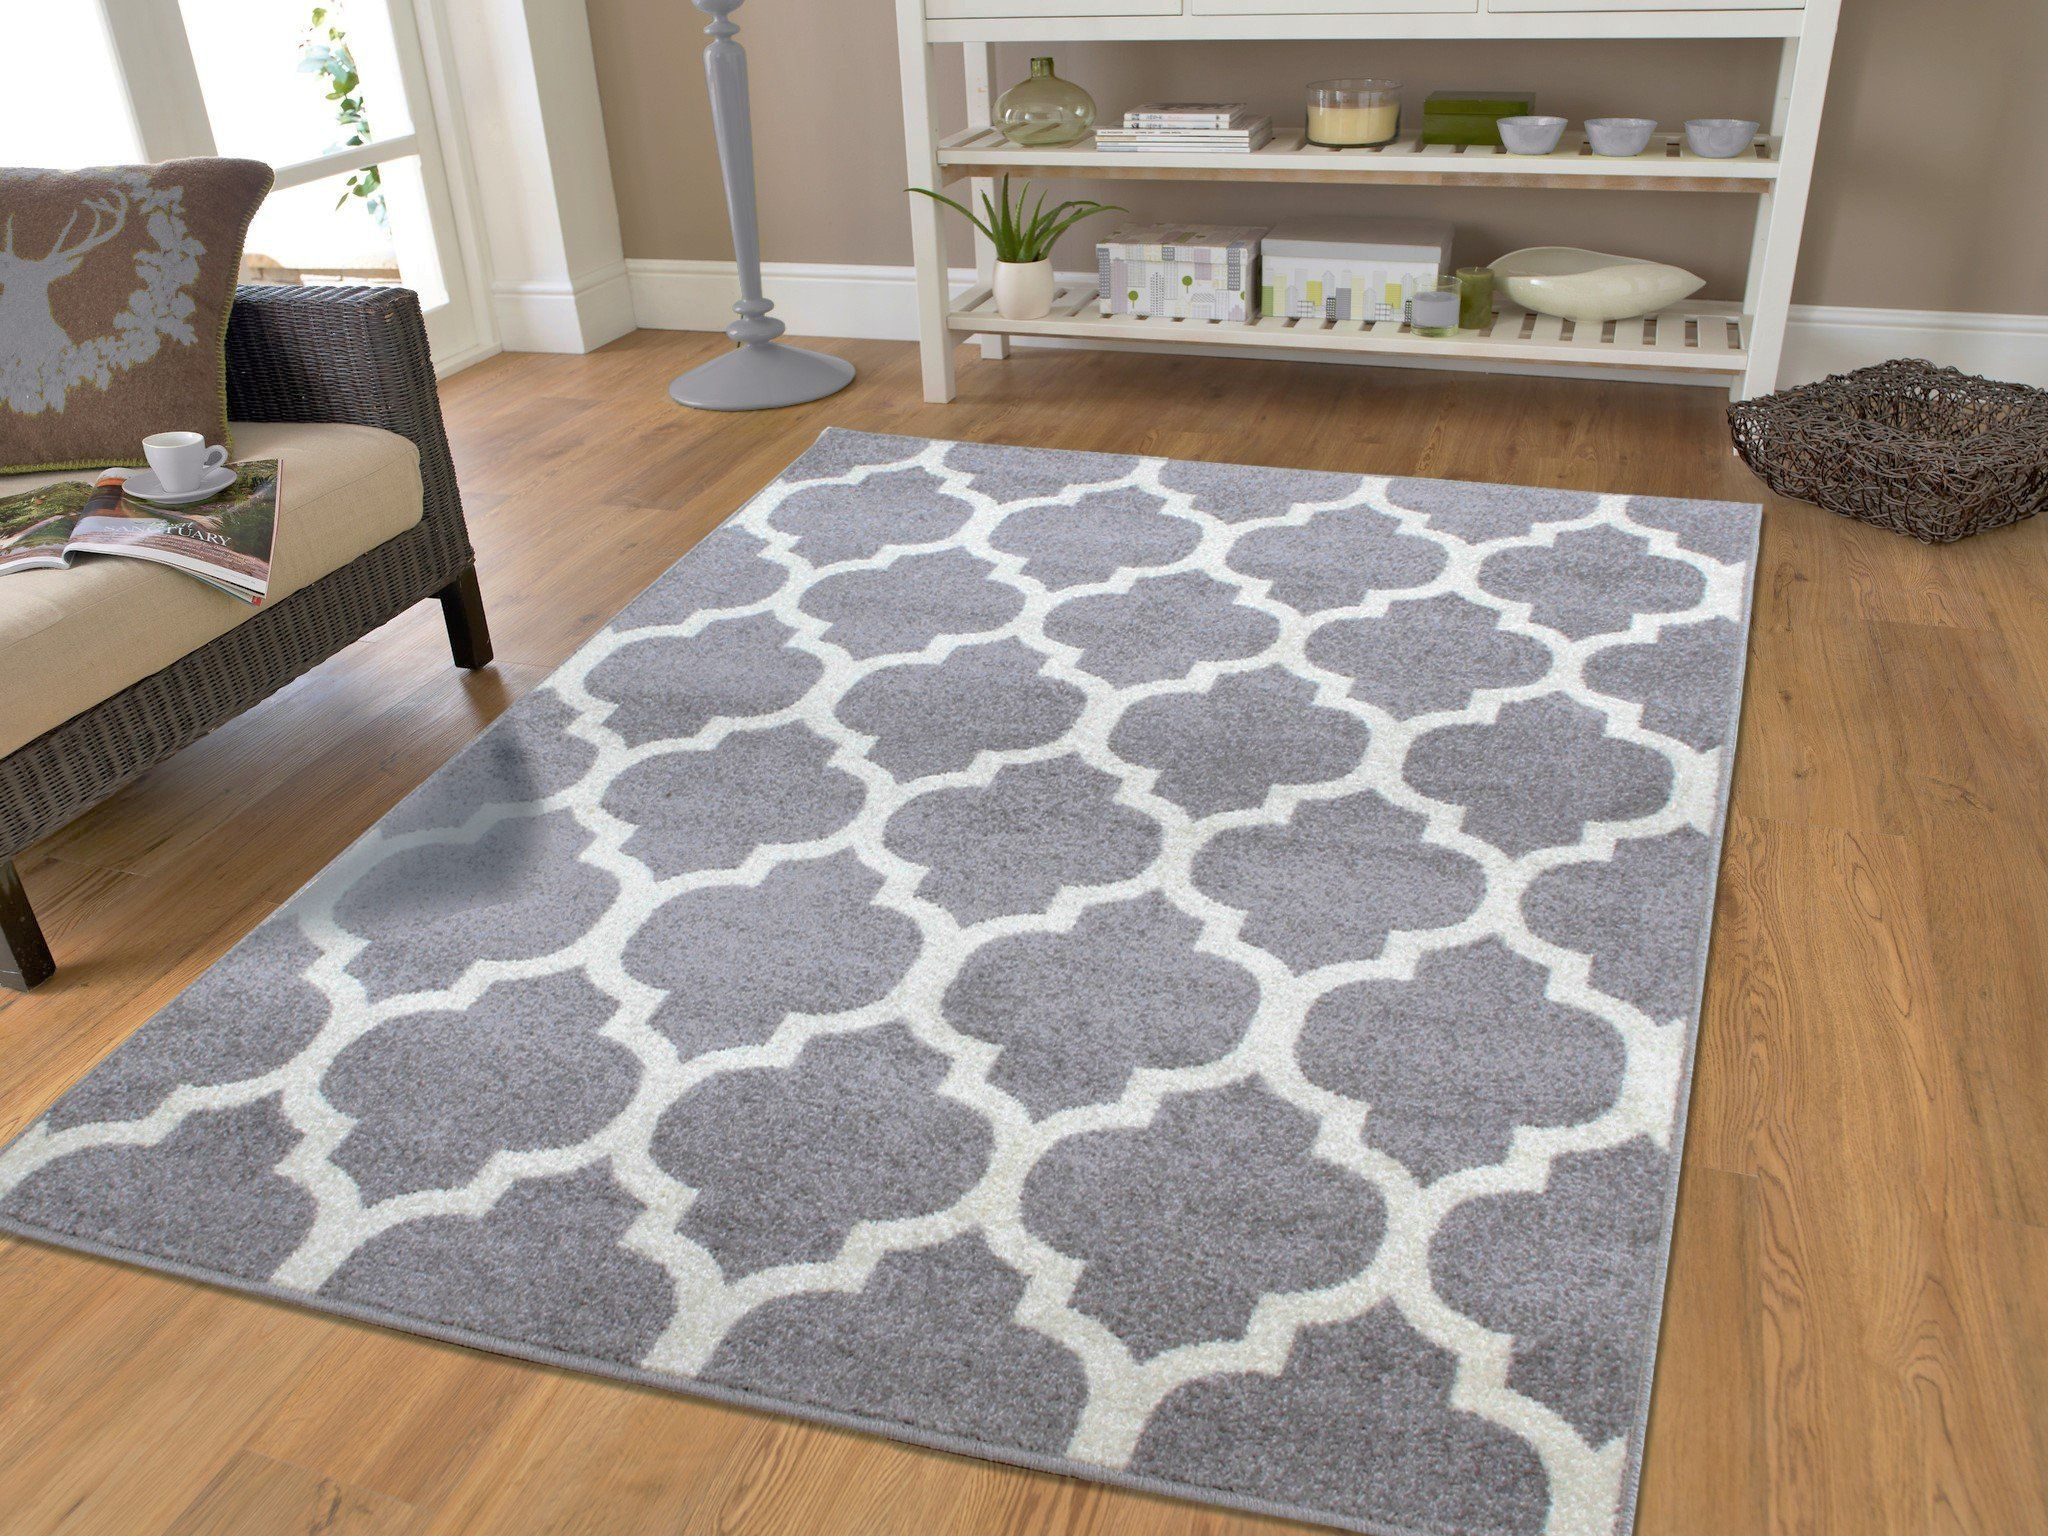 Luxury Large 8x11 Gray Moroccan Trellis Area Rug Grey And White Contemporary Rugs For Living Room